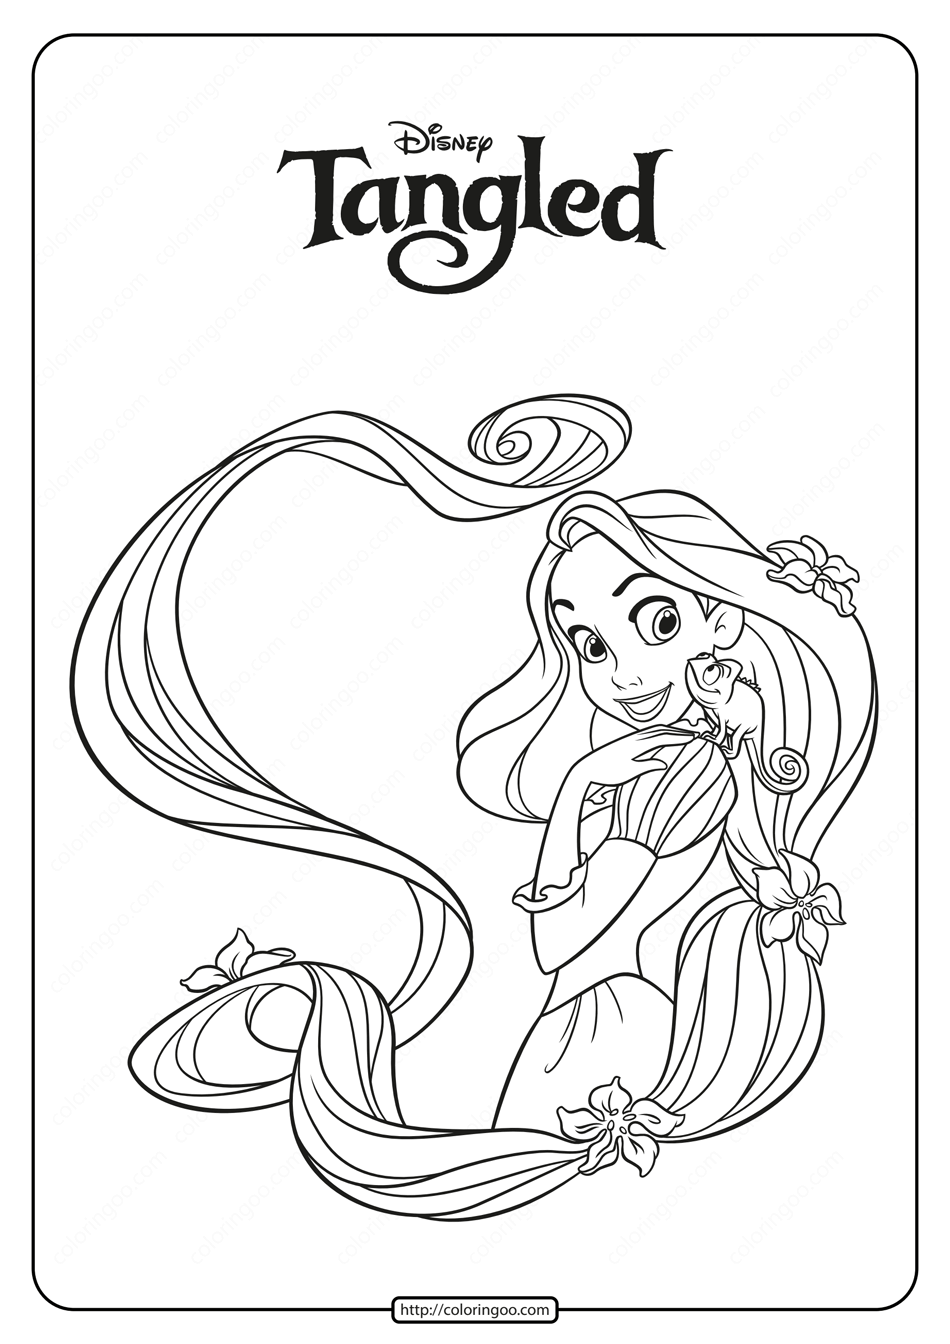 Free Printable Rapunzel Coloring Pages for Kids